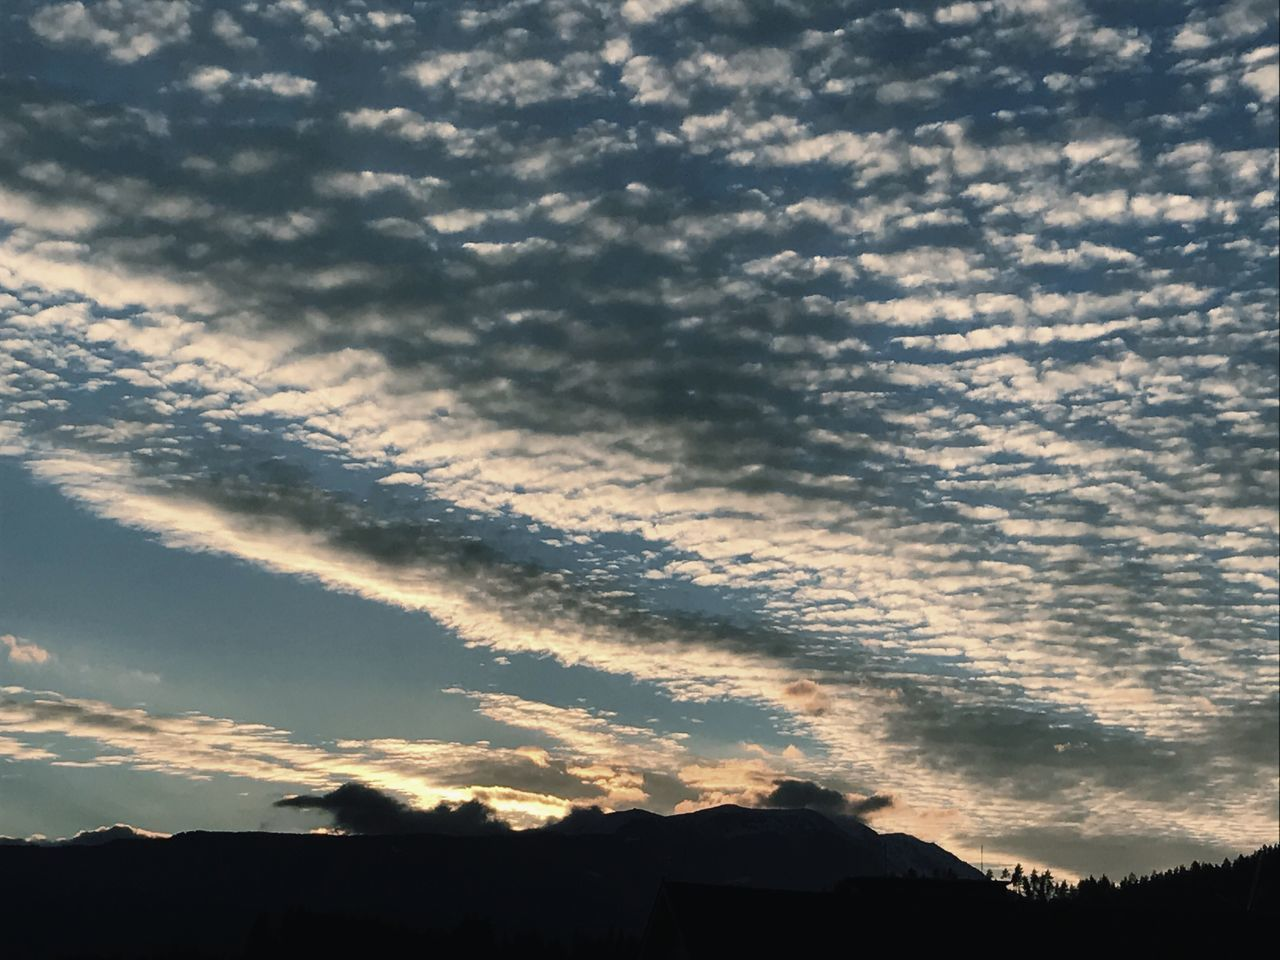 Cloud - Sky Sky Beauty In Nature Silhouette Sunset Outdoors Dramatic Sky Low Angle View Mountain Scenics Tranquil Scene Dobratsch Villach